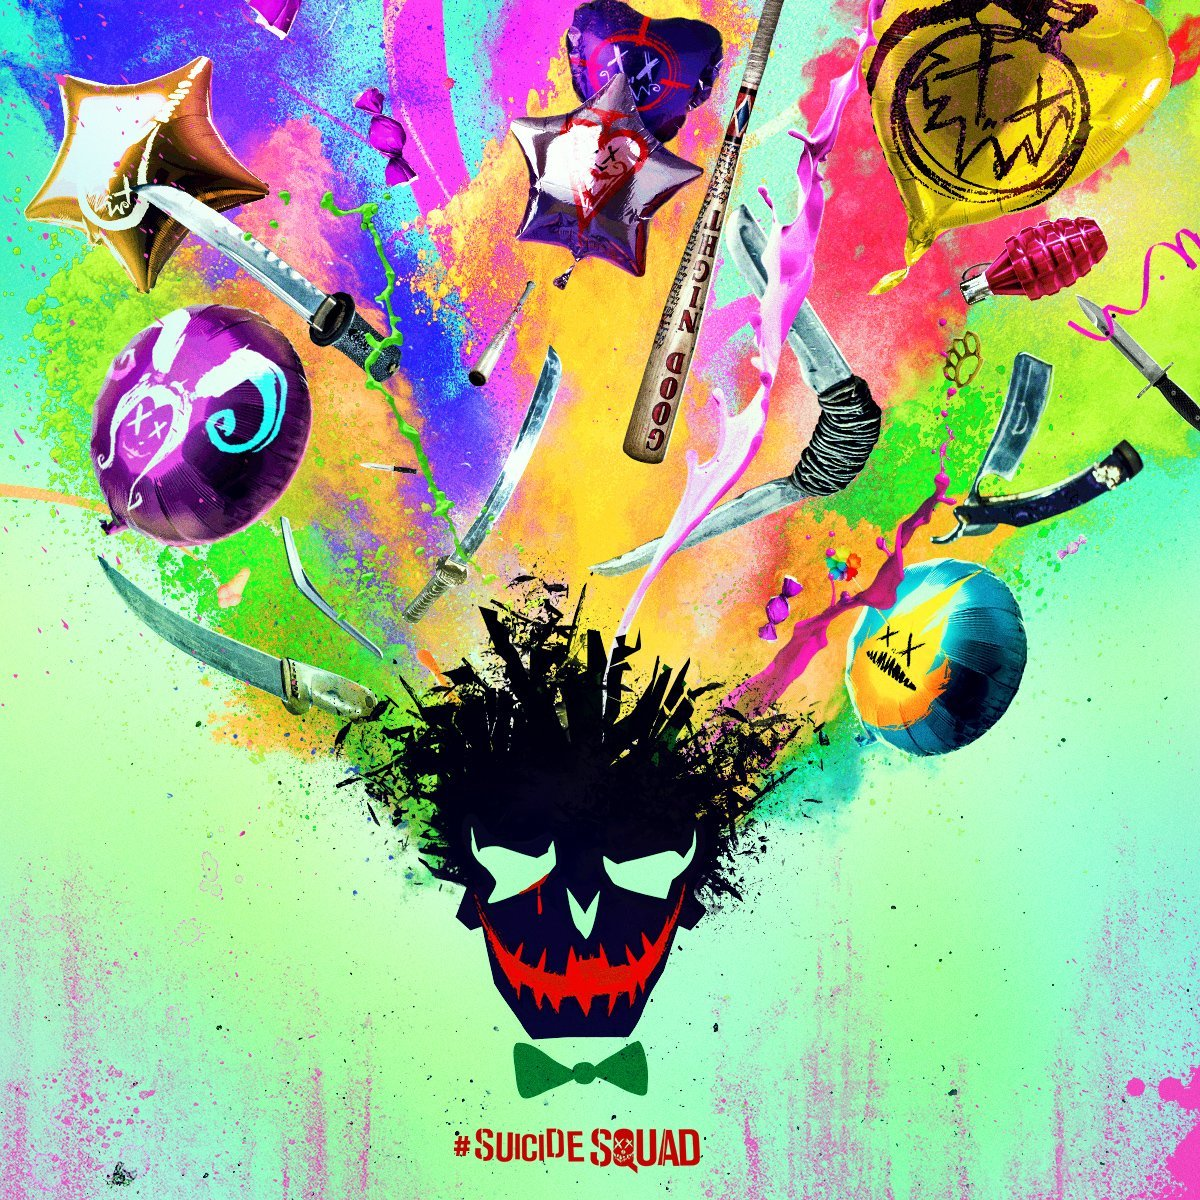 Suicide Squad Gets Yet Another Colorful New Poster Ahead Of August 5th Release